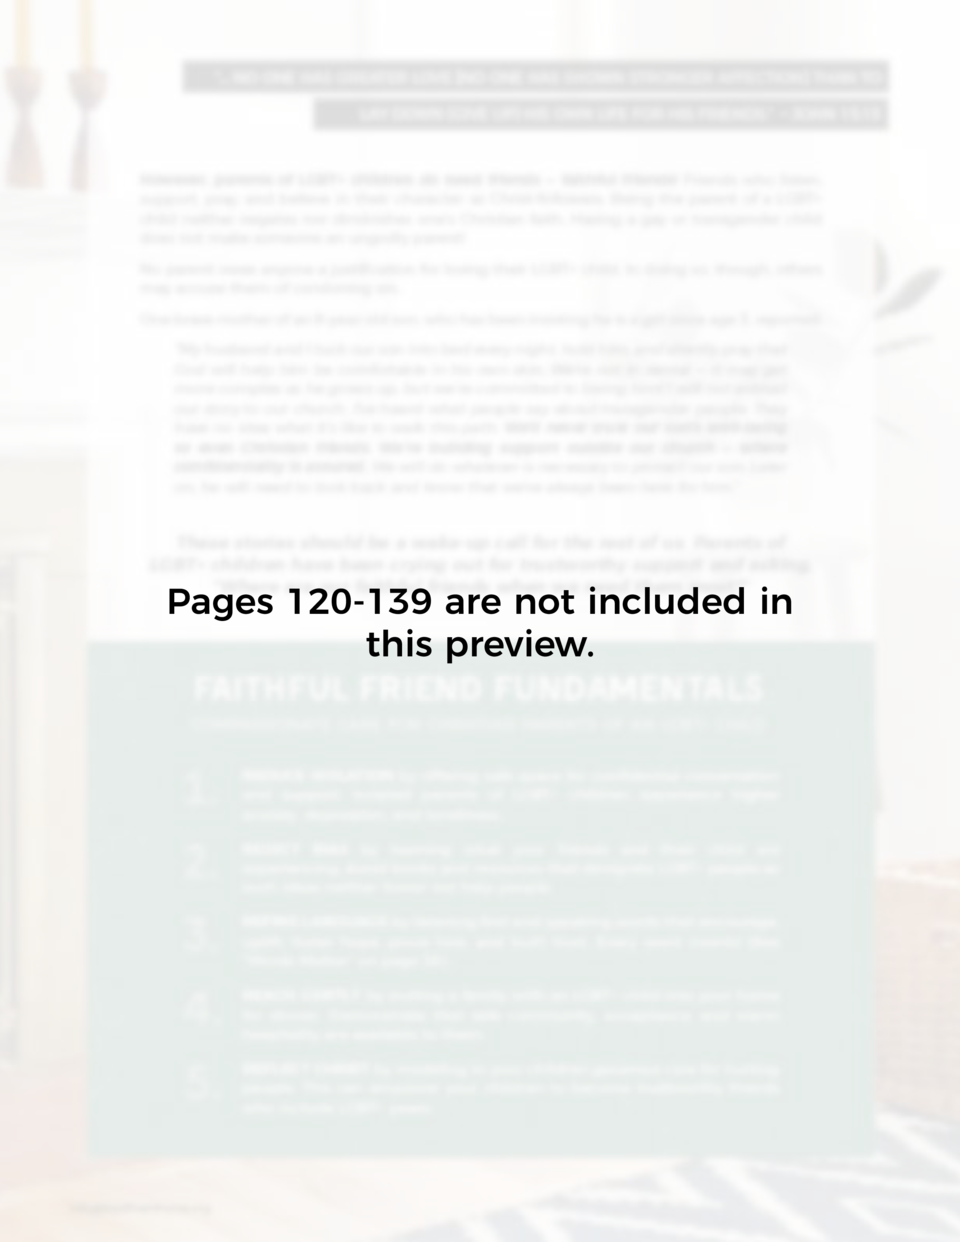 Pages 120-139 are not included in this preview.